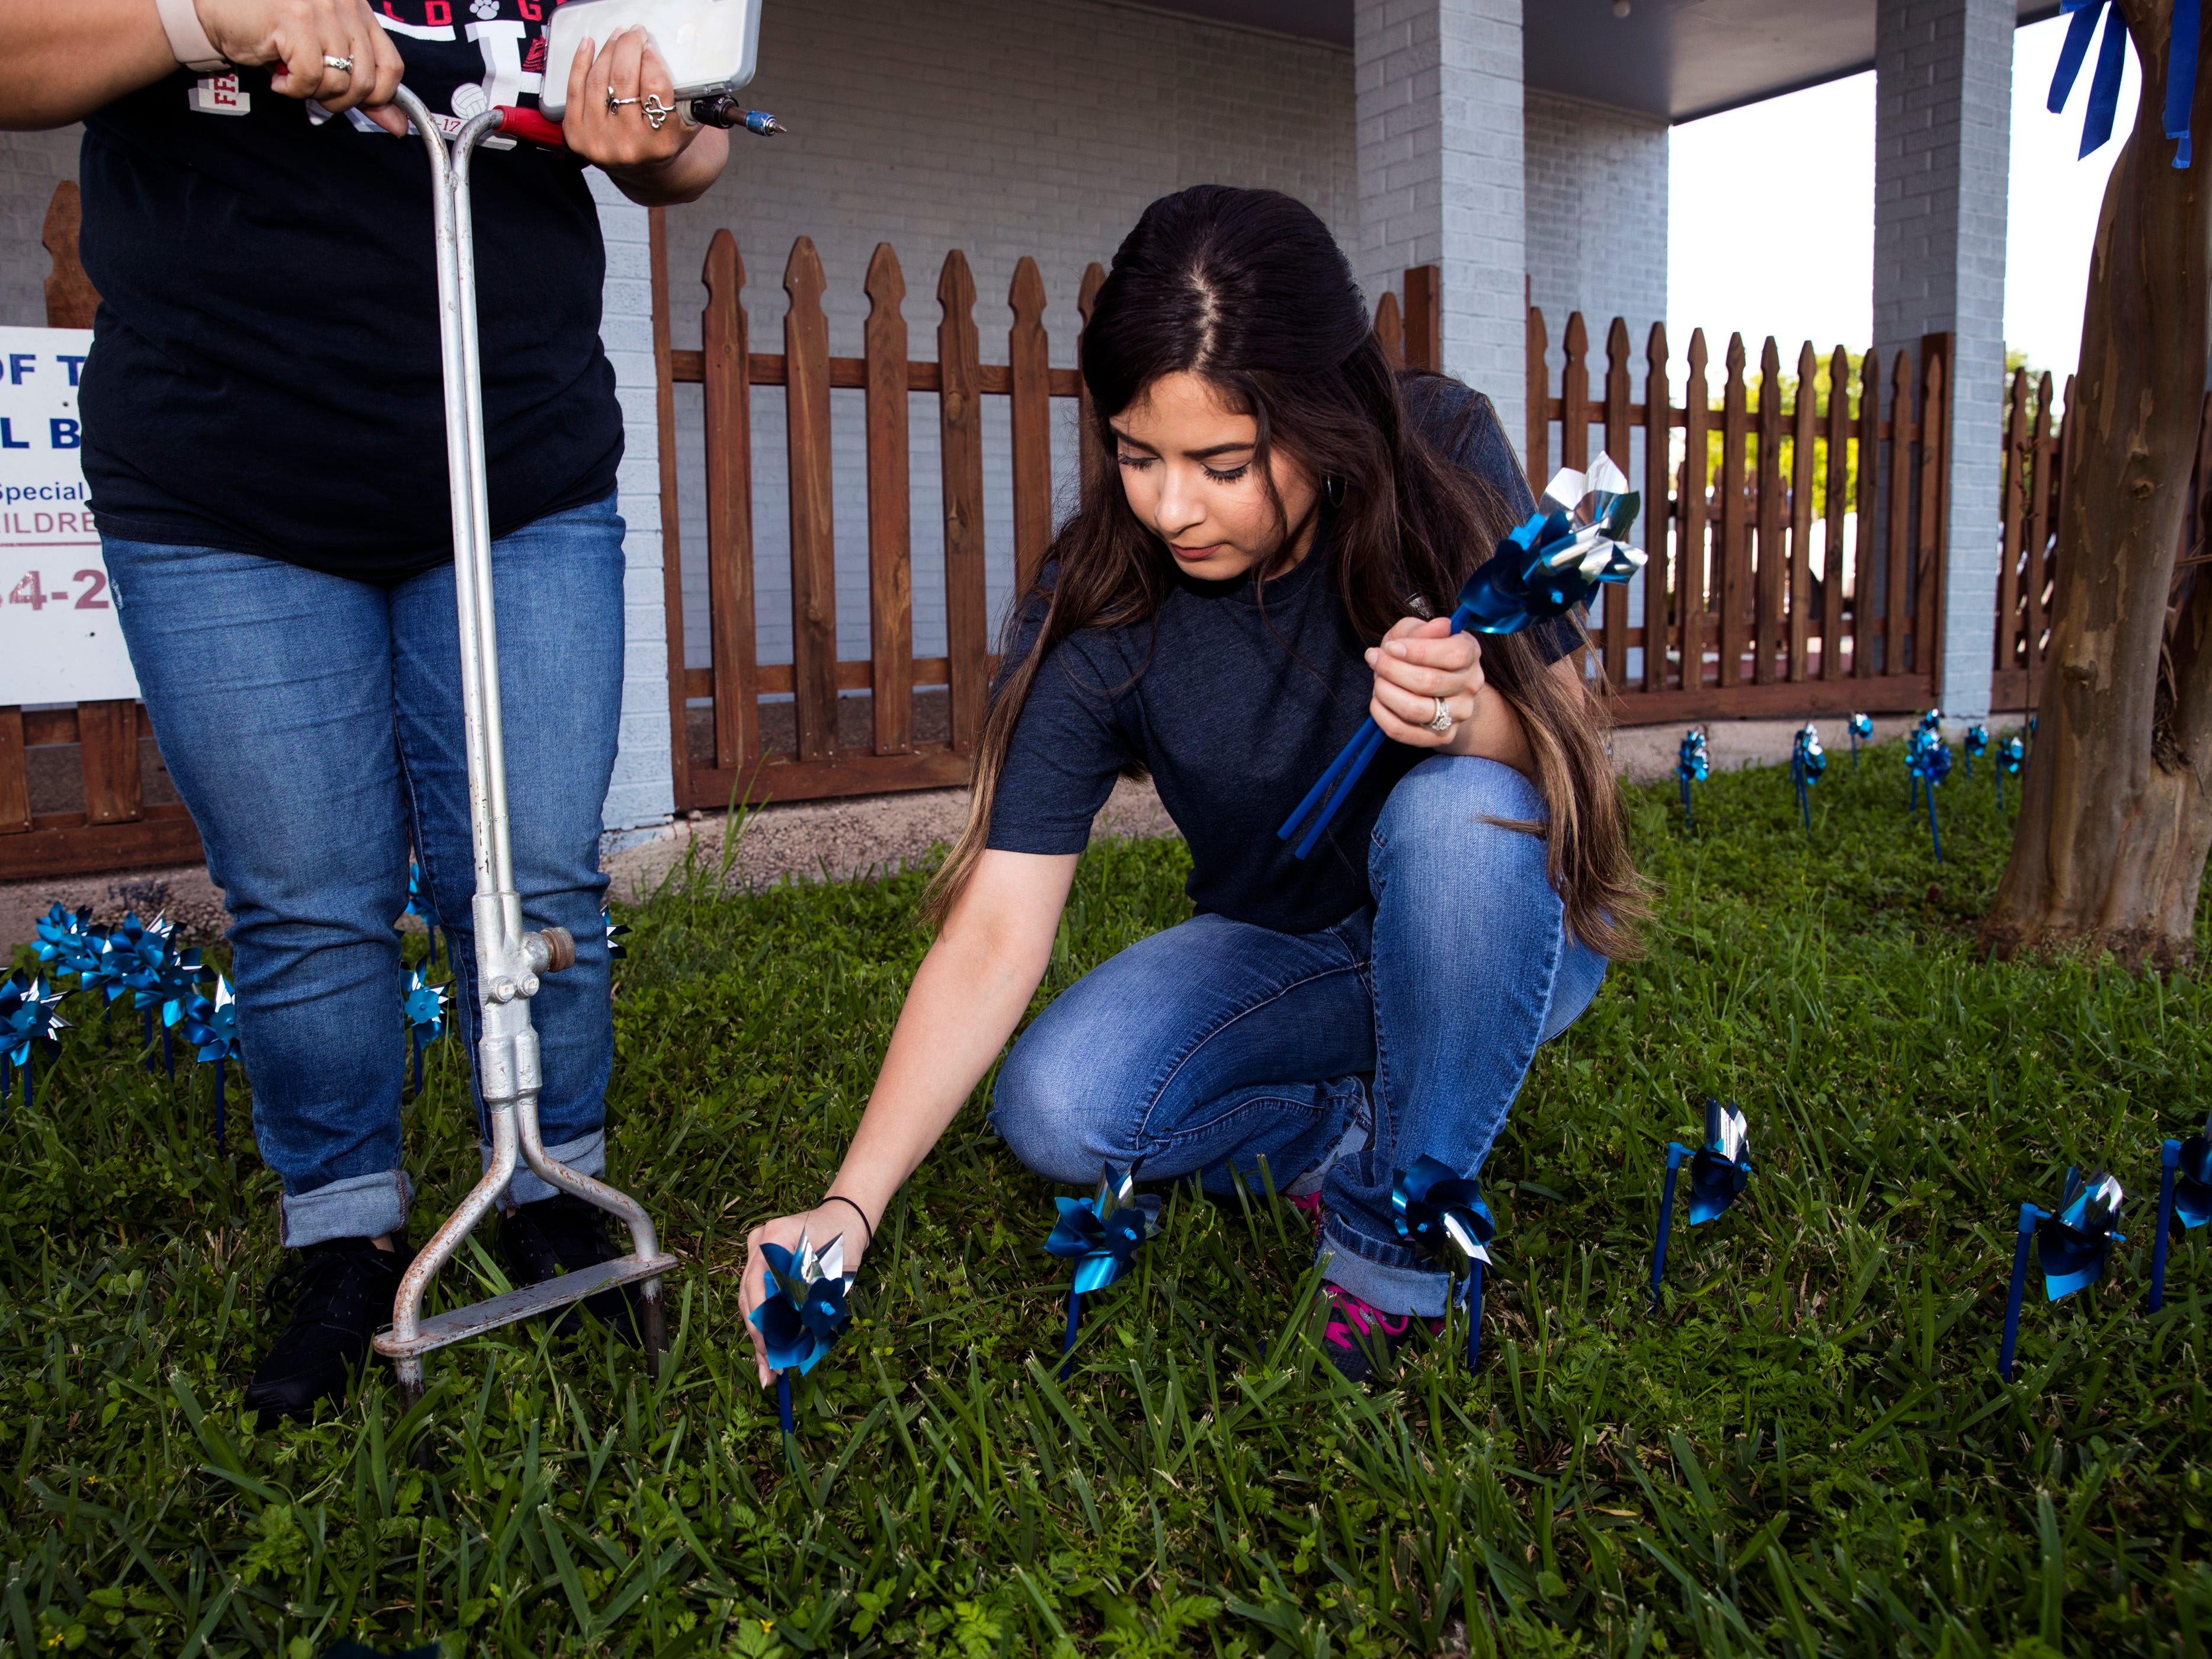 Kristal Valdez helps install pinwheels in front of CASA of the Coastal Bend on Friday, March 29, 2019. The 1,066 pinwheels represent a child from the Coastal Bend who was in foster care last year and will stay up throughout the month of April, which is Child Abuse Awareness Month.